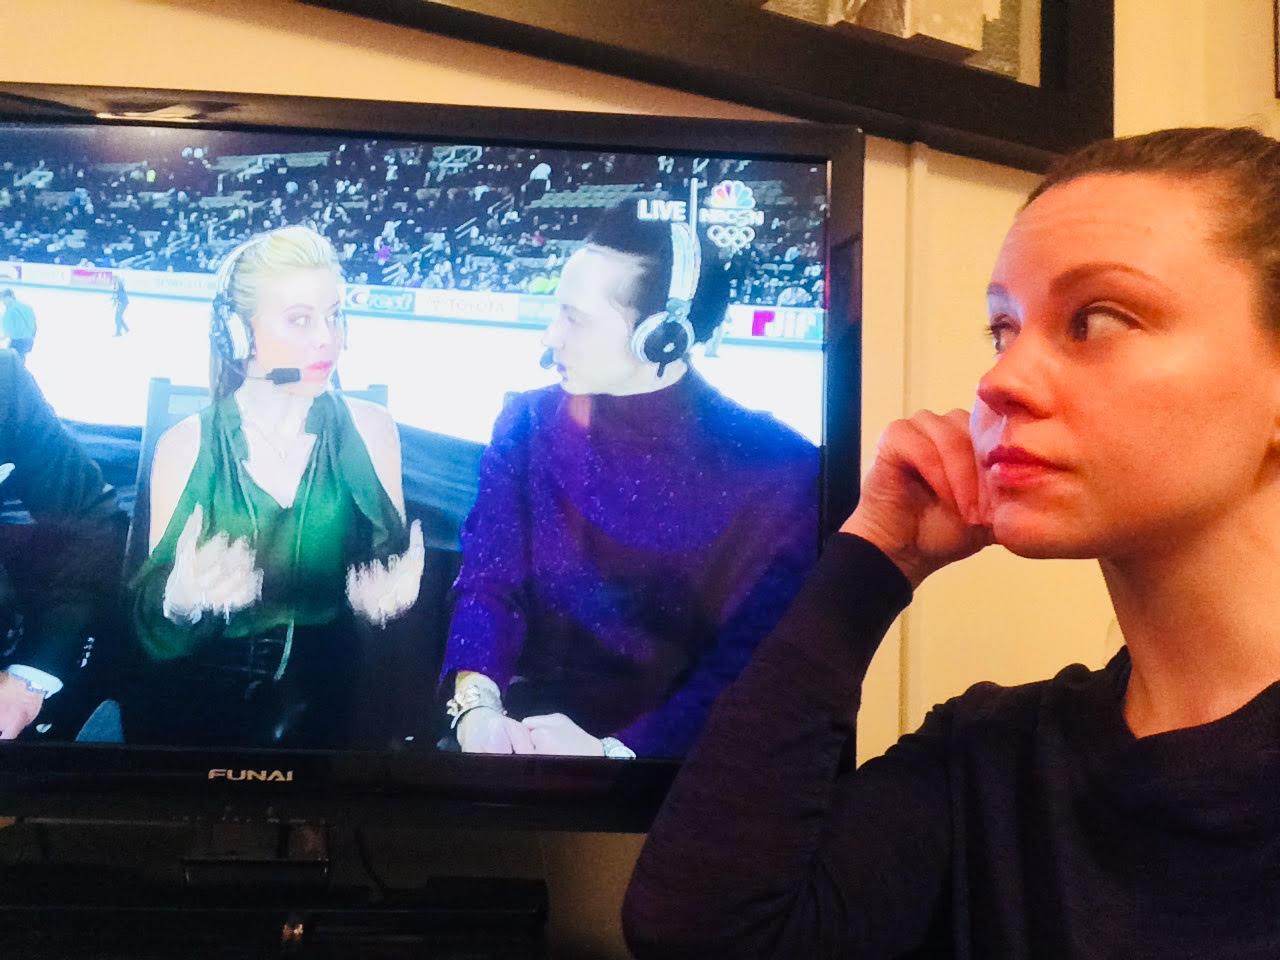 My name is Brigitte Thieme-Burdette and I play Mary Bennet in Pride and Prejudice. I spent my snow day finishing grad school applications and chatting with Tara Lapinski and Jonny Weir #olympicsjunkie